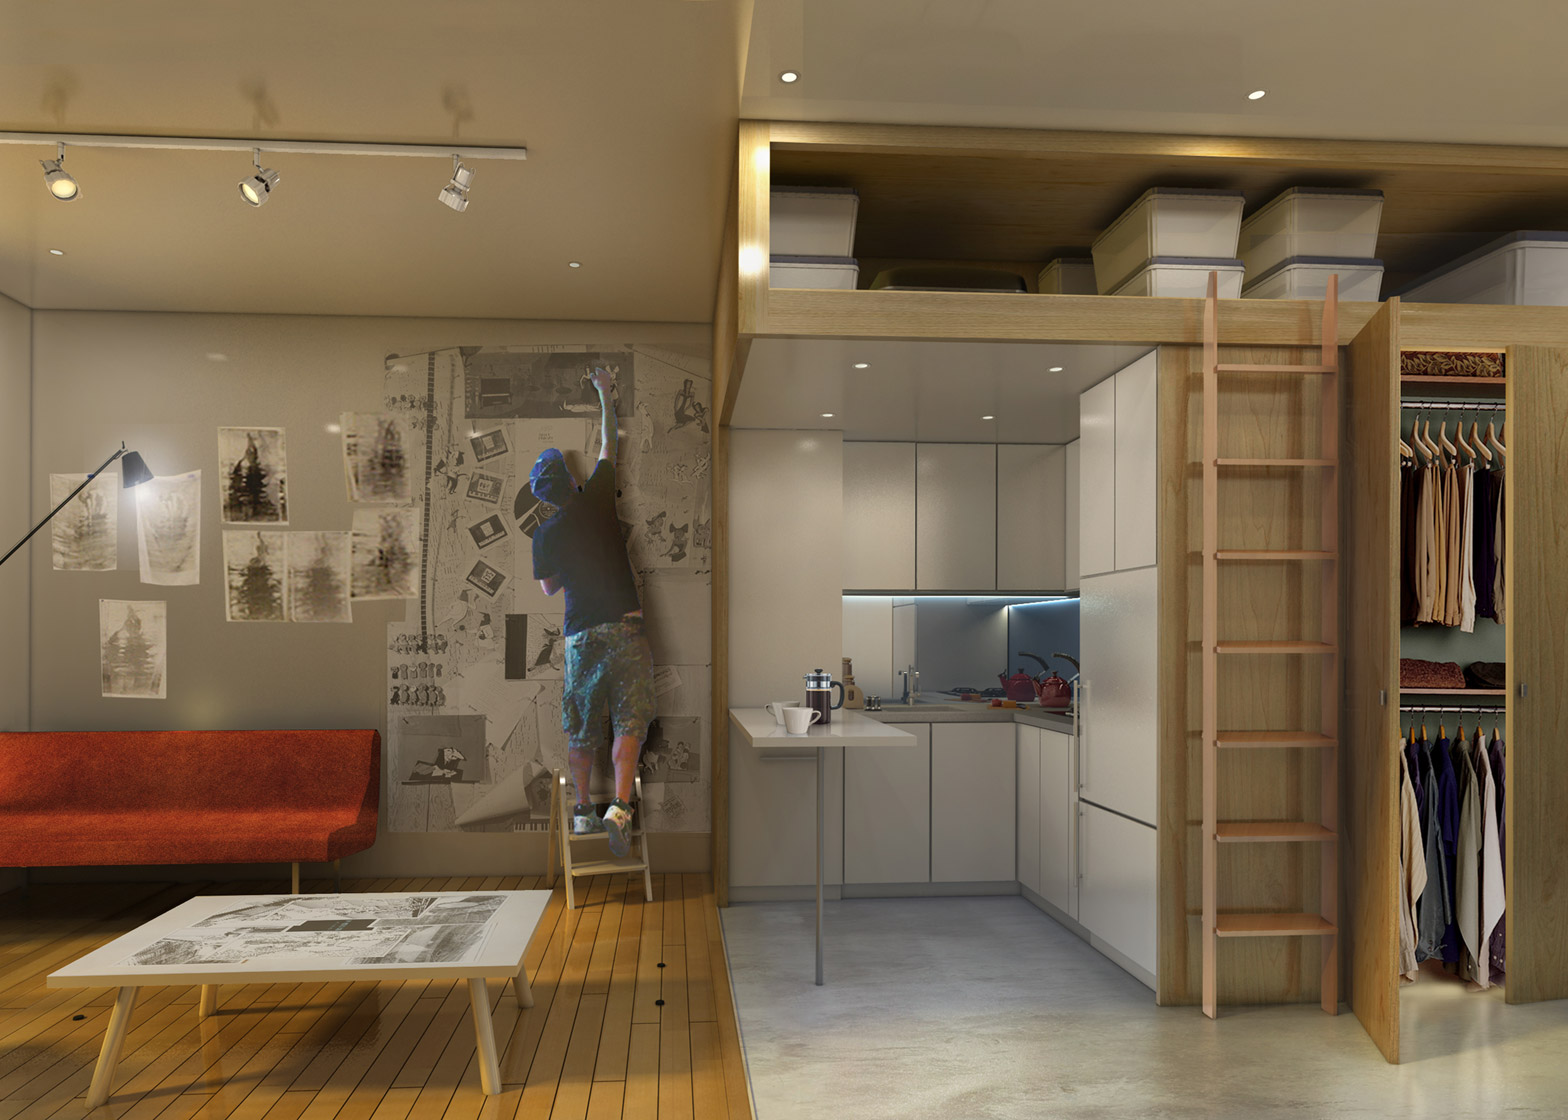 My-Micro-NY-apartment-building_nArchitects_New-York_dezeen_1568_3